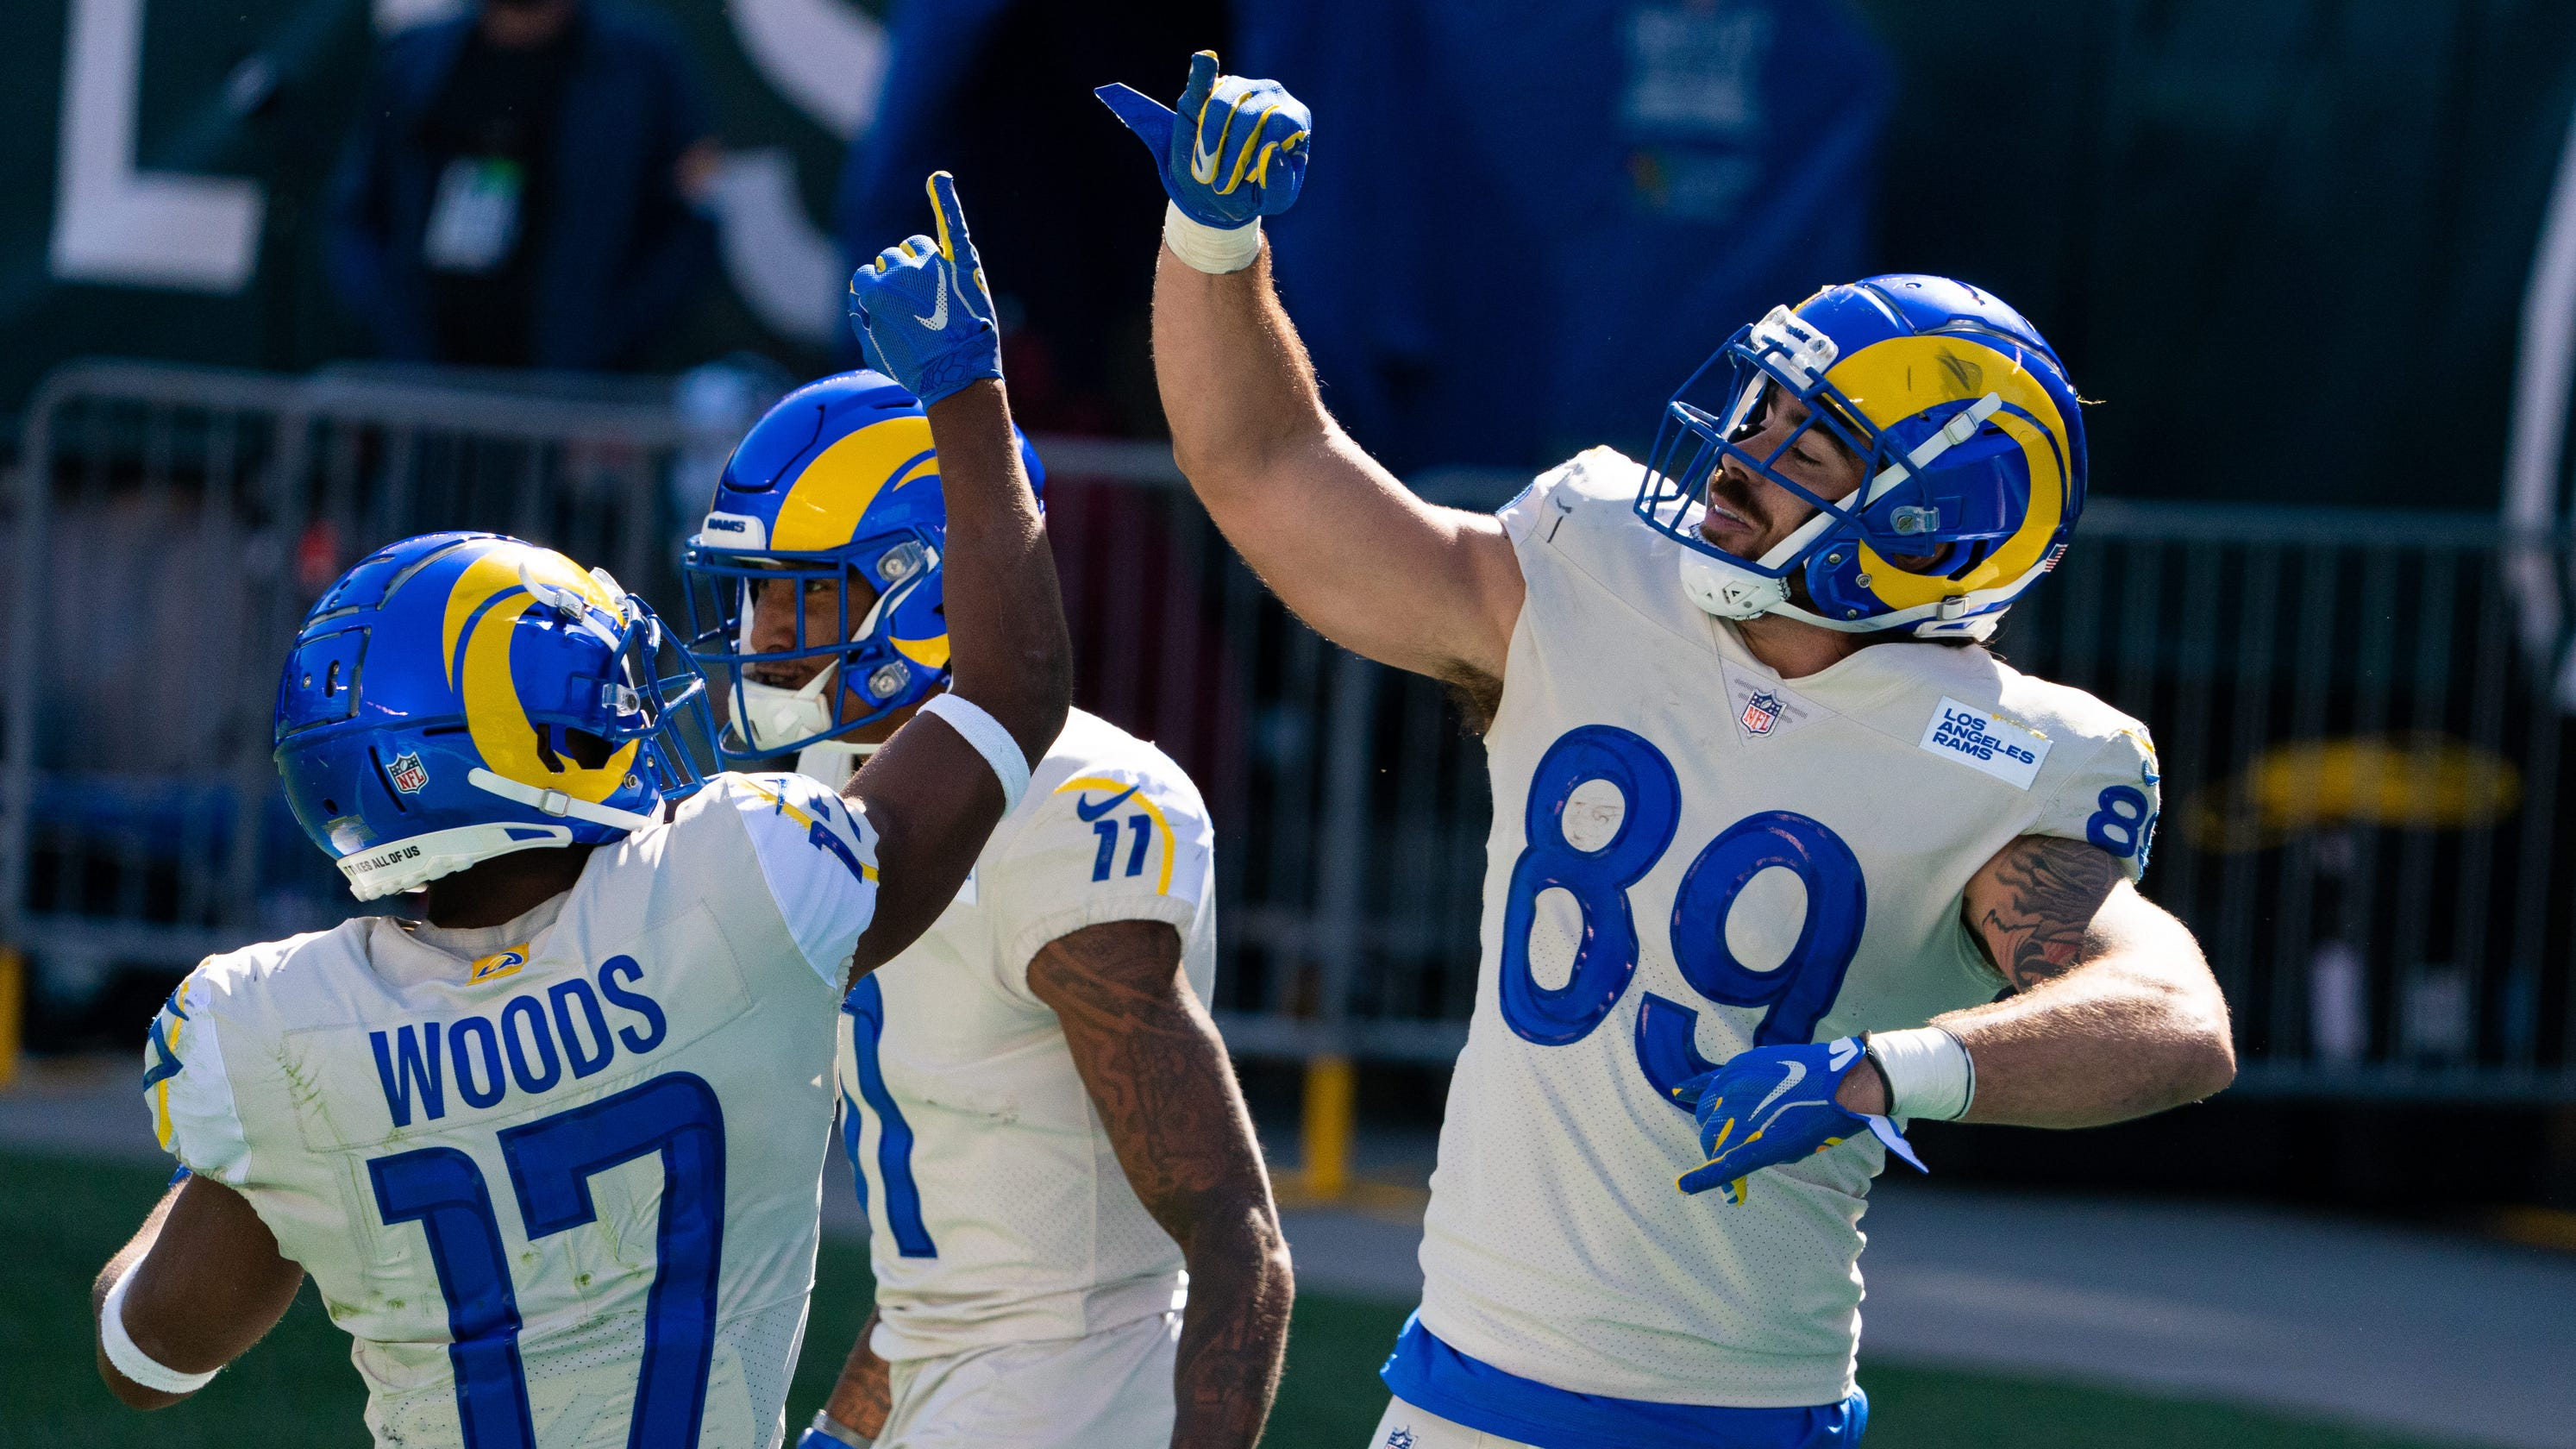 Los Angeles Rams could be surprise NFL contender after 2-0 start